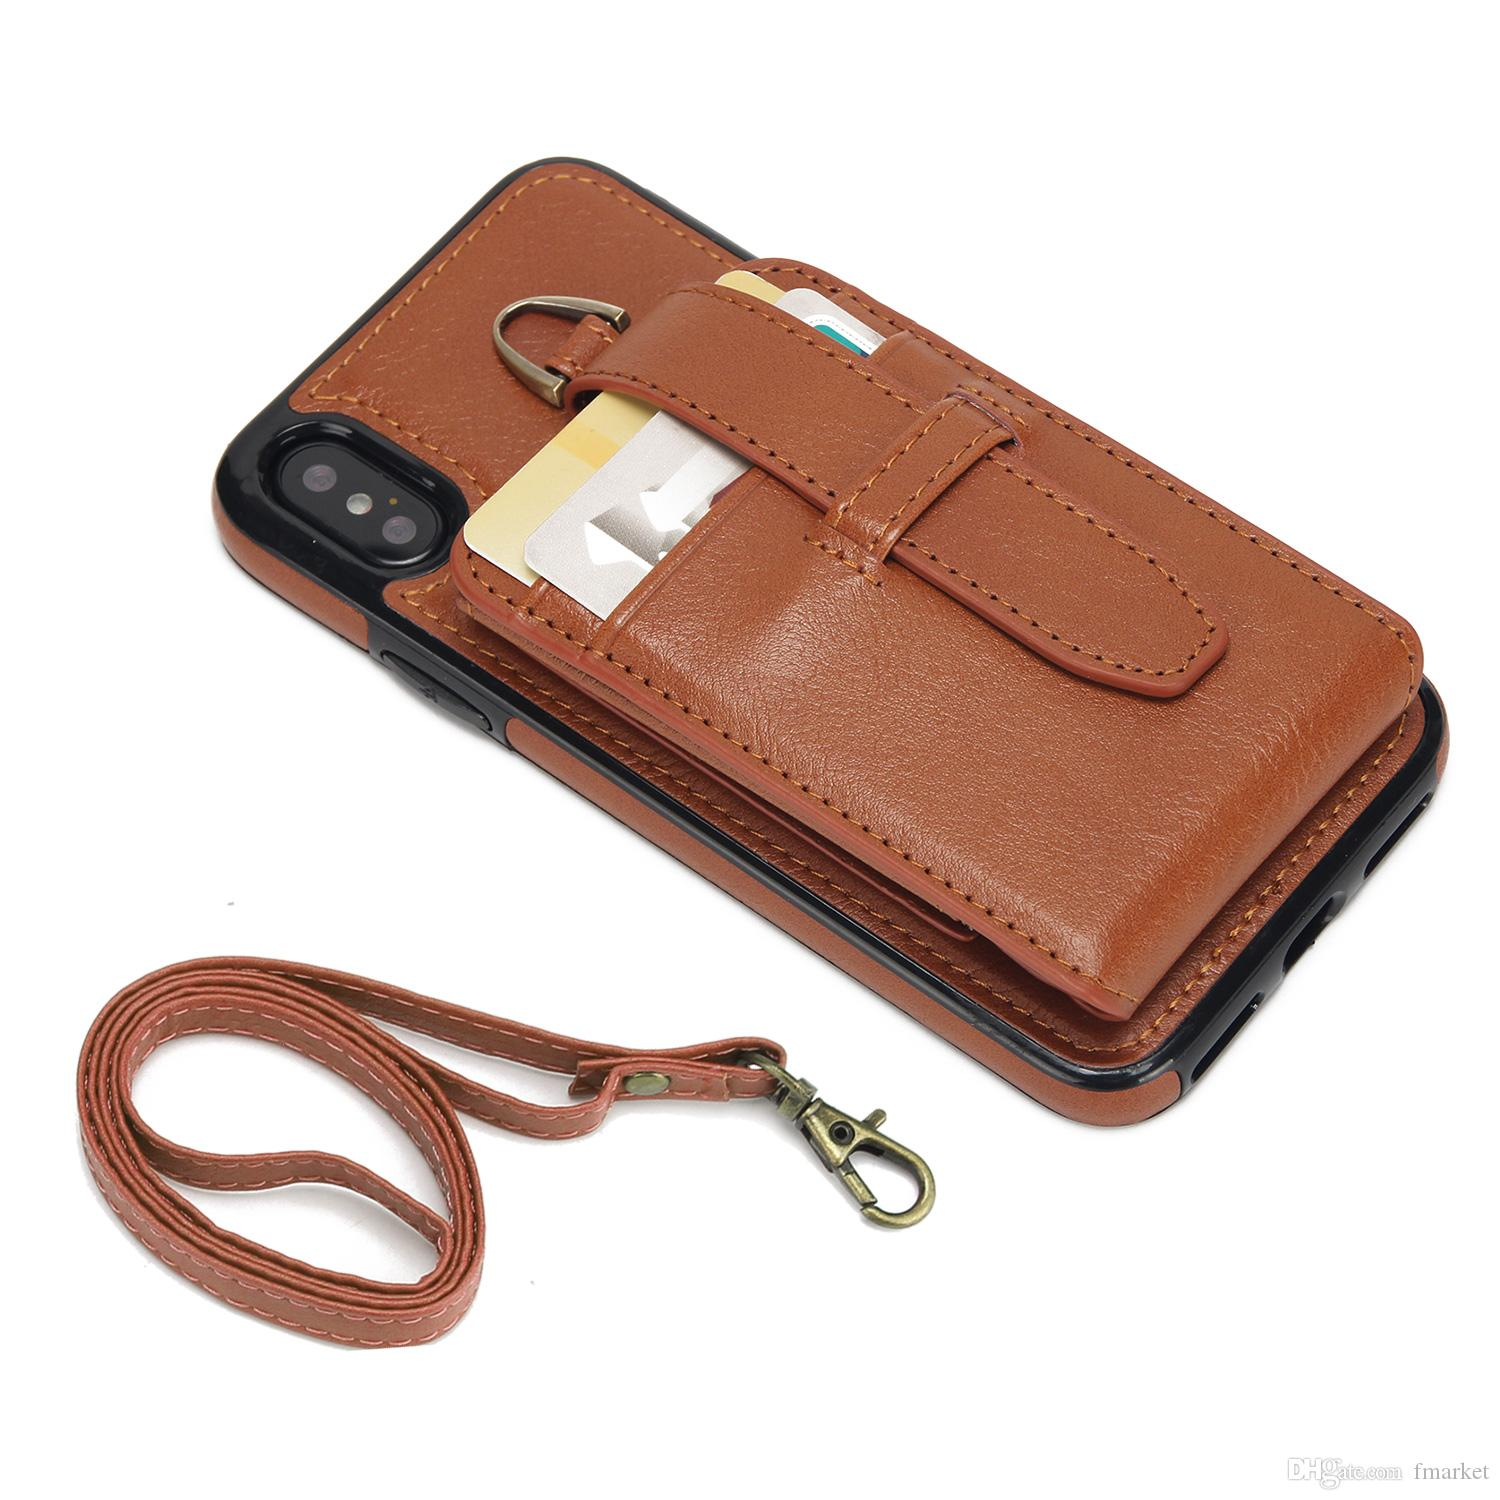 best authentic de512 31896 New style multi-function Leather wallet style mobile phone case for Iphone  x,8 with card slot pouch rope to carry